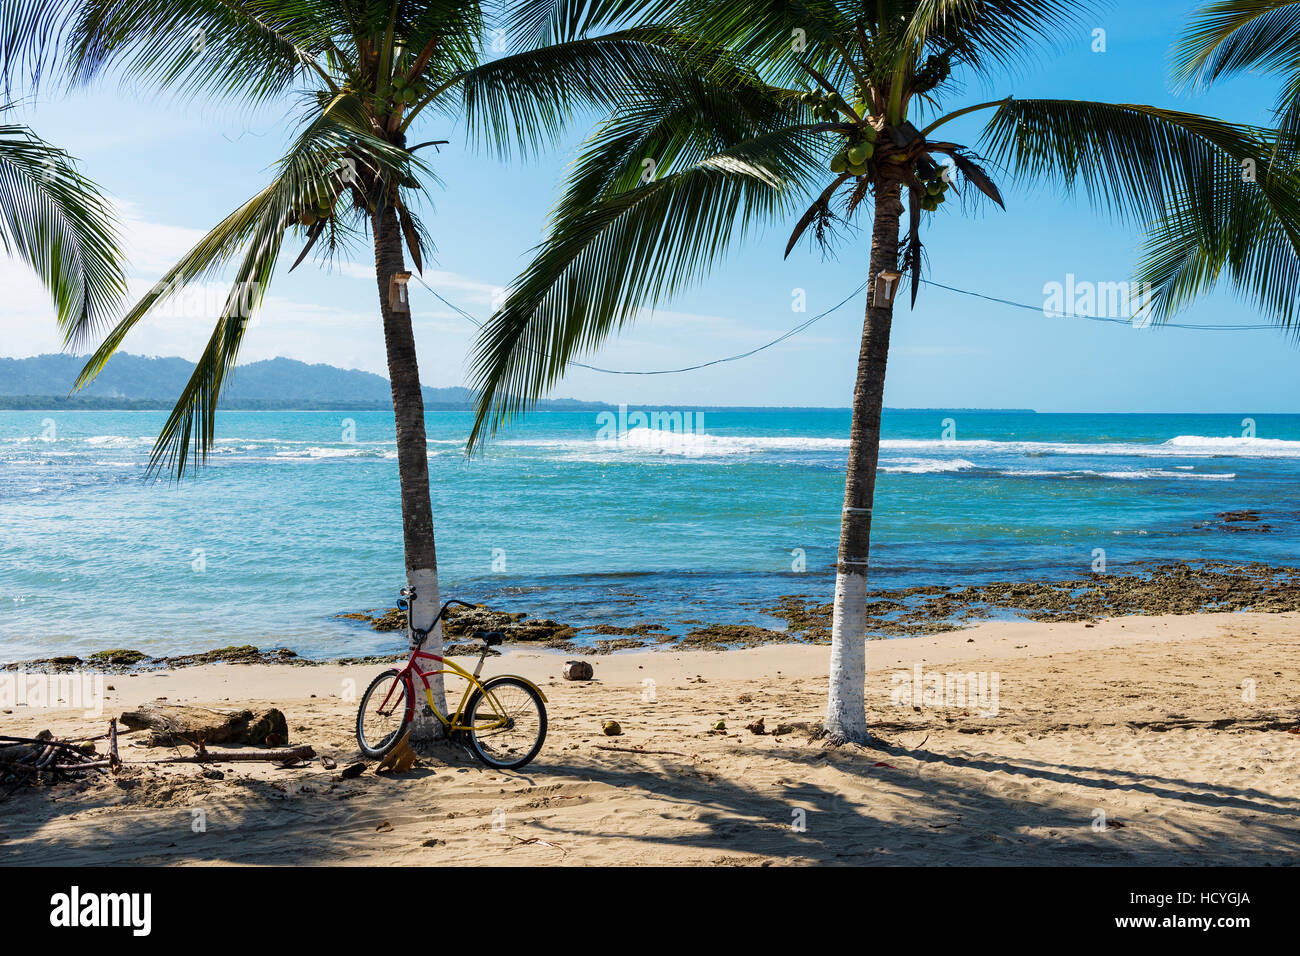 View of a beach with palm trees in Puerto Viejo de Talamanca, Costa Rica, Central America Stock Photo